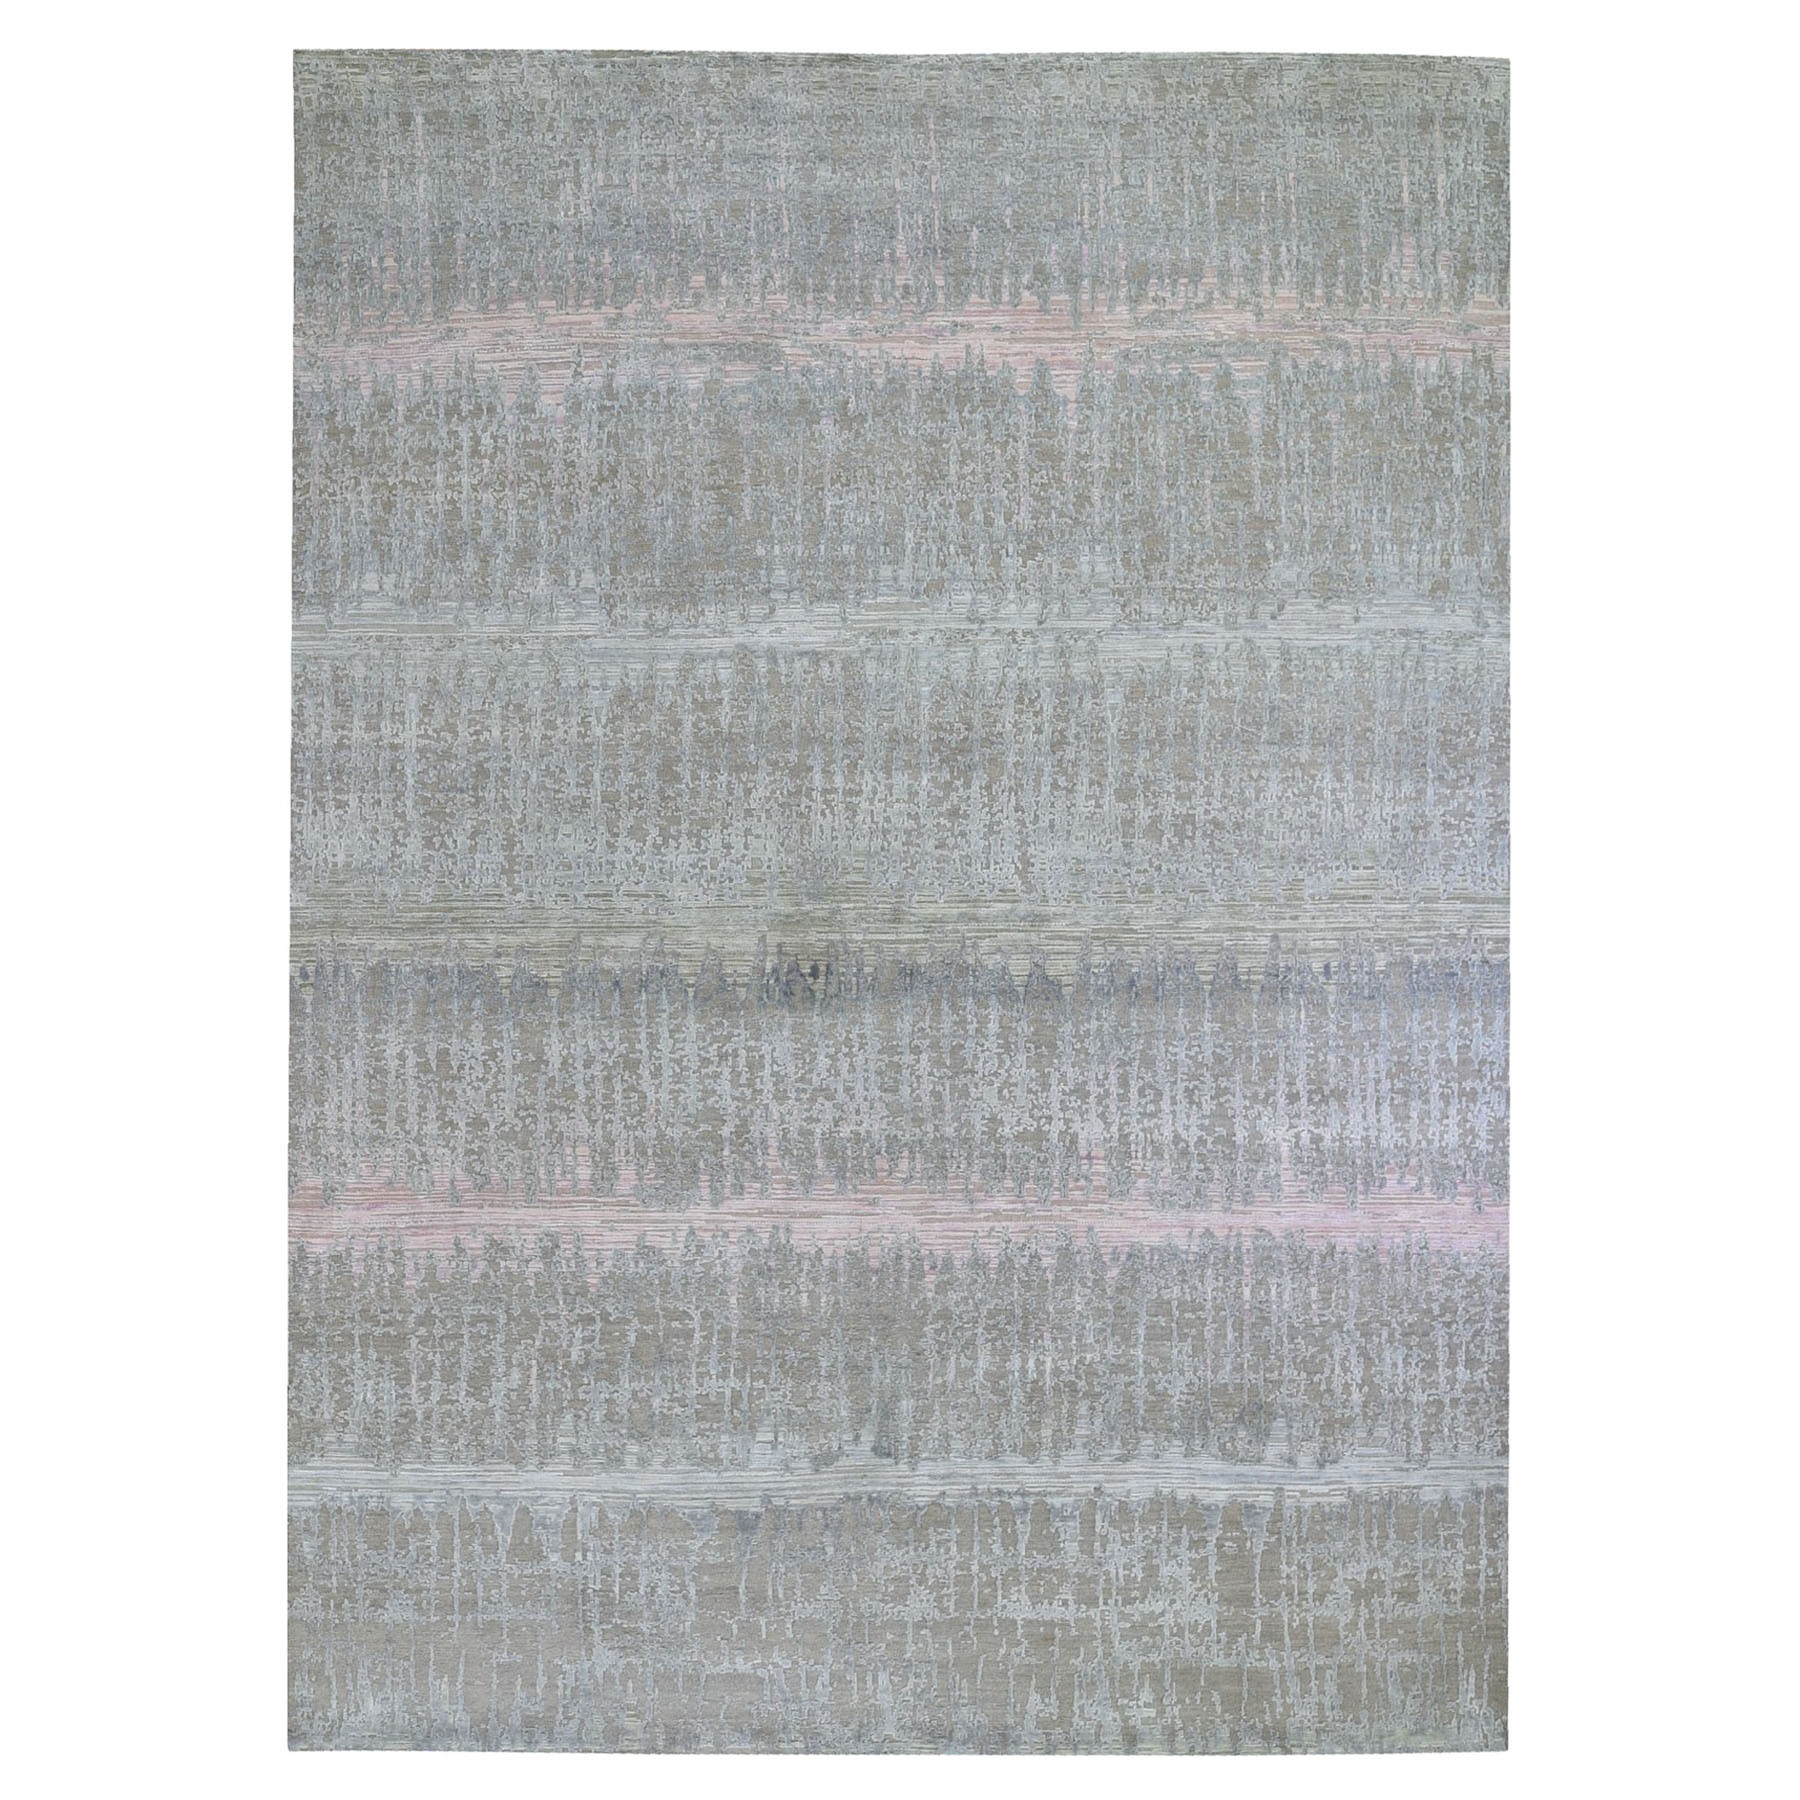 "9'x12'5"" Cardiac Design with Pastel Colors Textured Wool and Pure Silk Hand Knotted Oriental Rug"